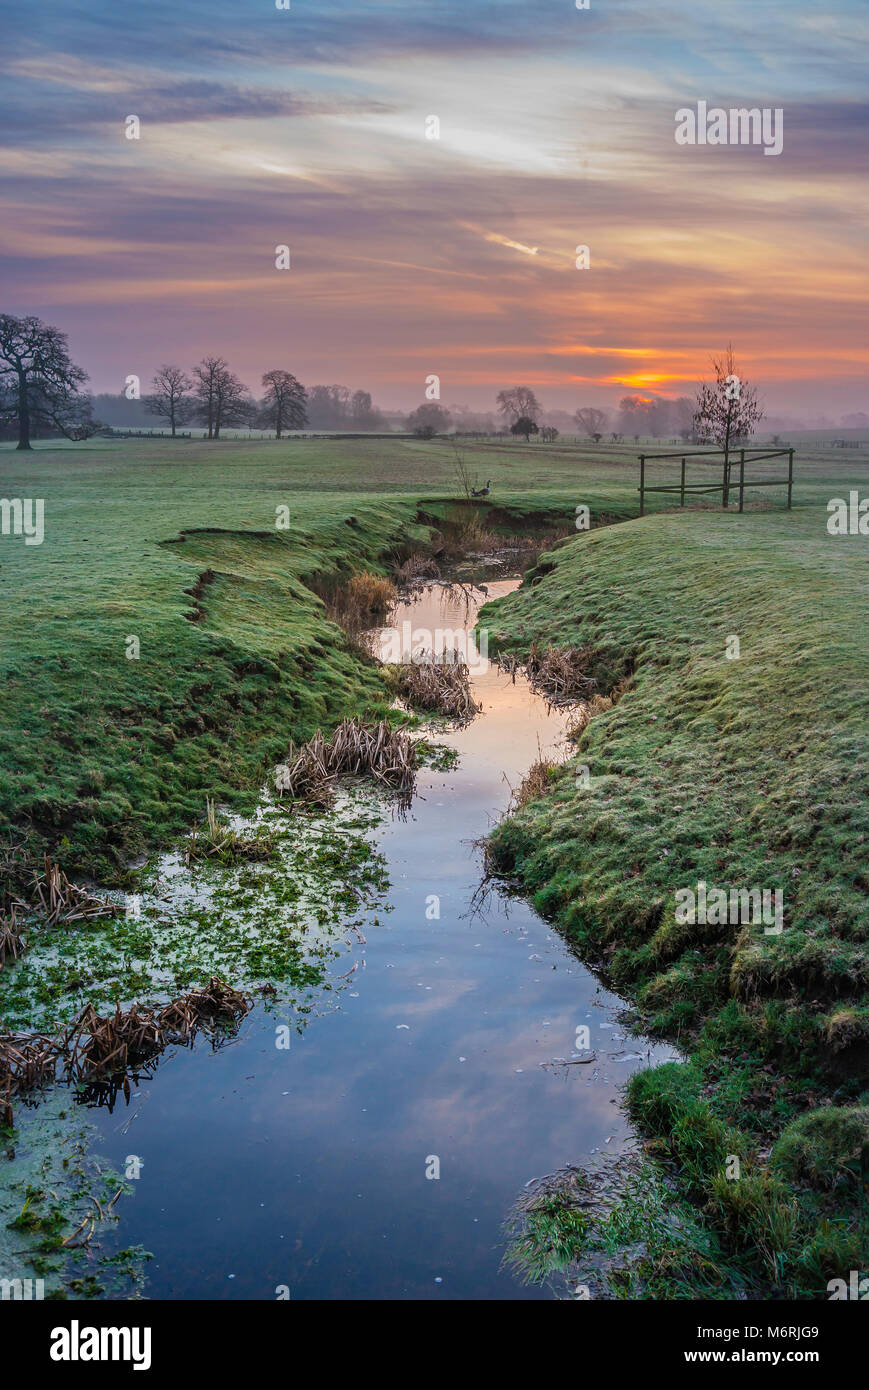 Dawn at Wistow, Leicestershire. - Stock Image